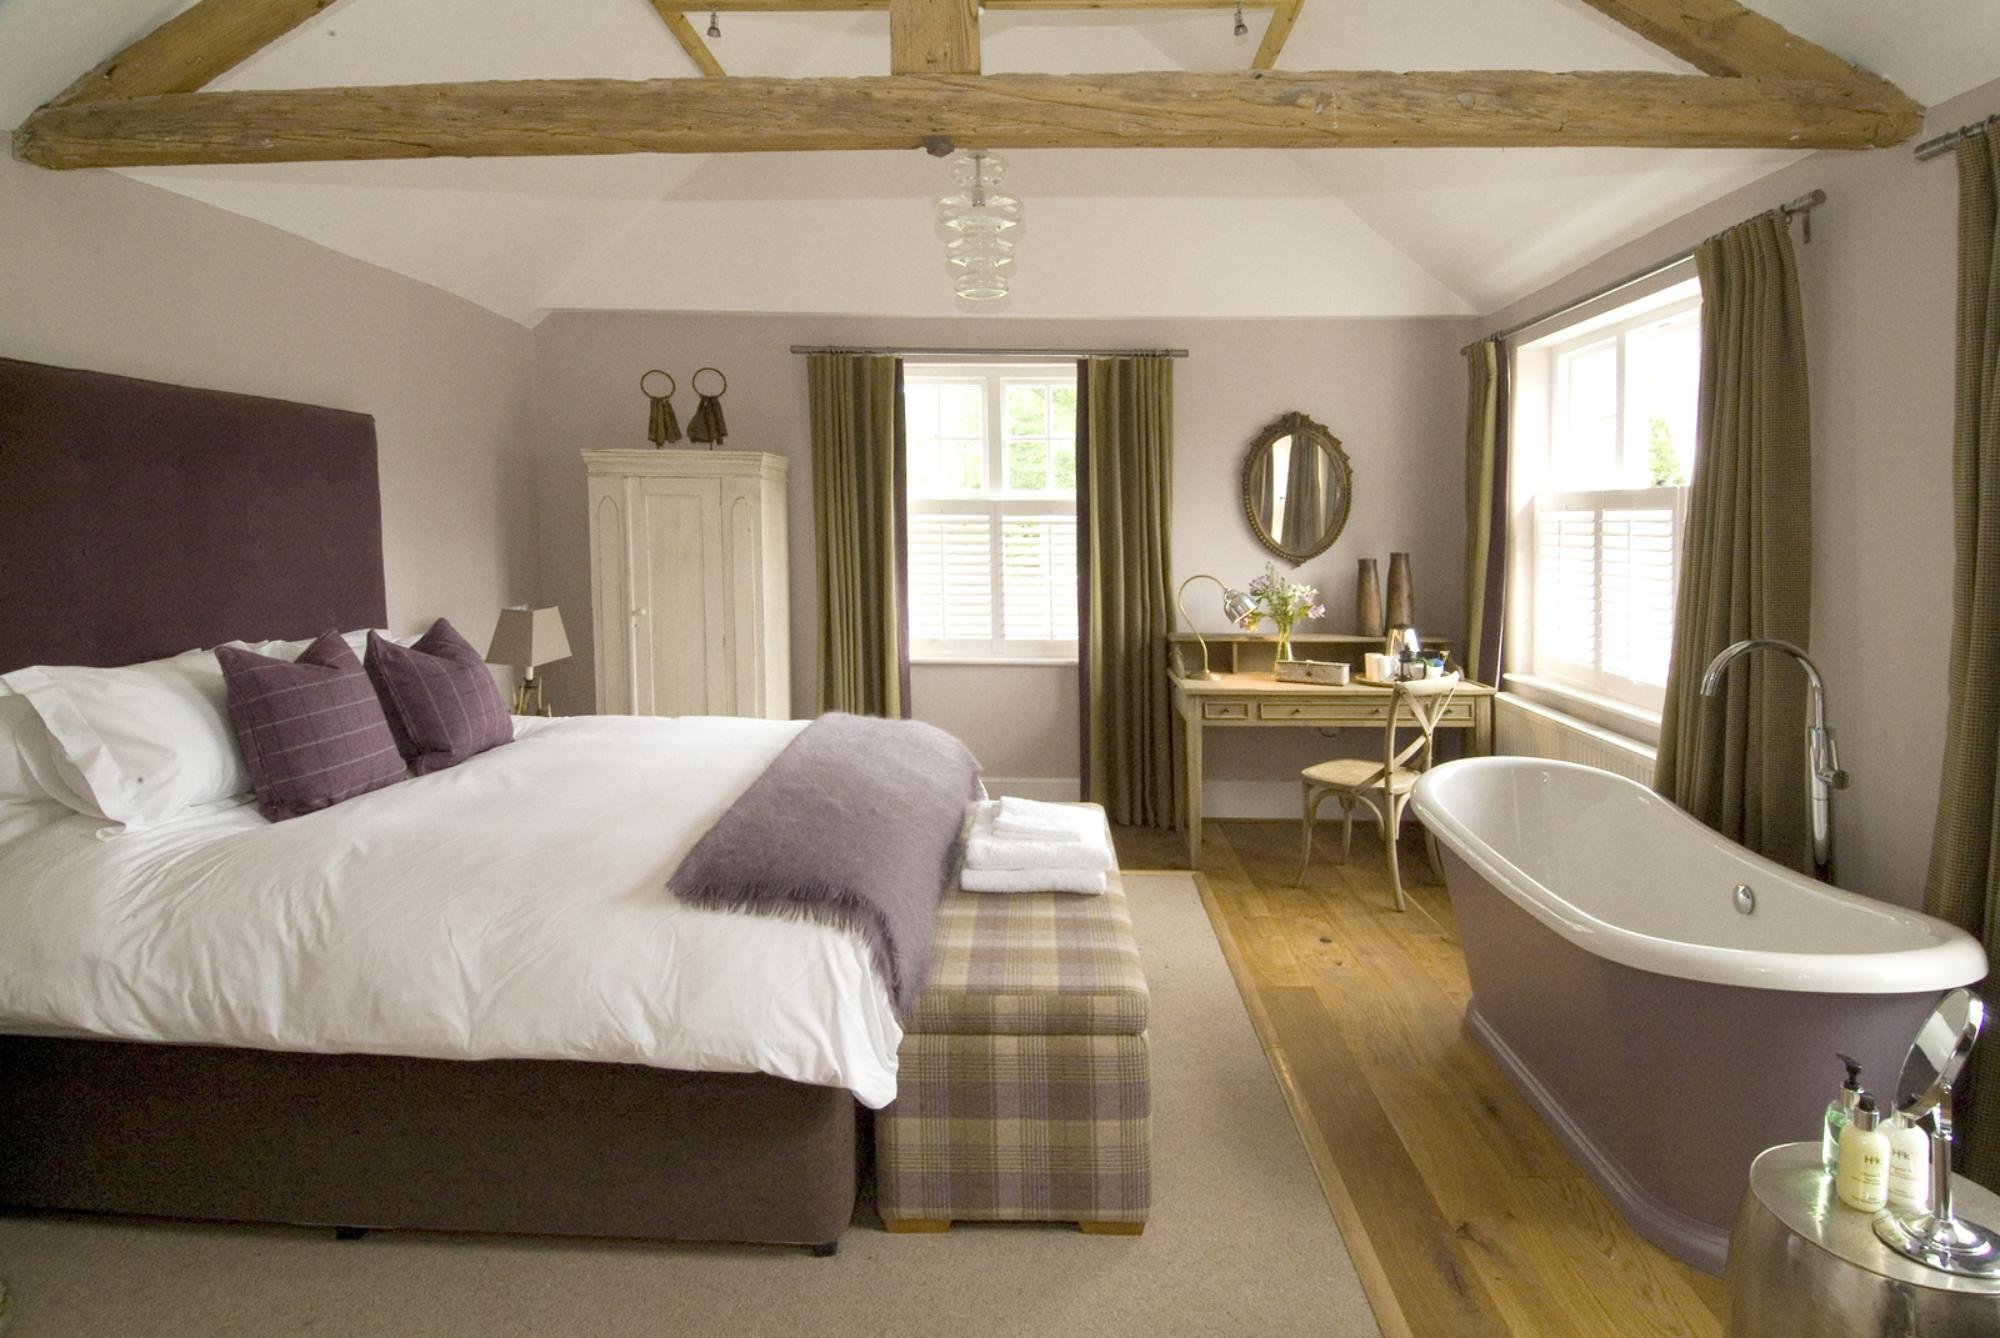 Hotels in Surrey holidays at Cool Places